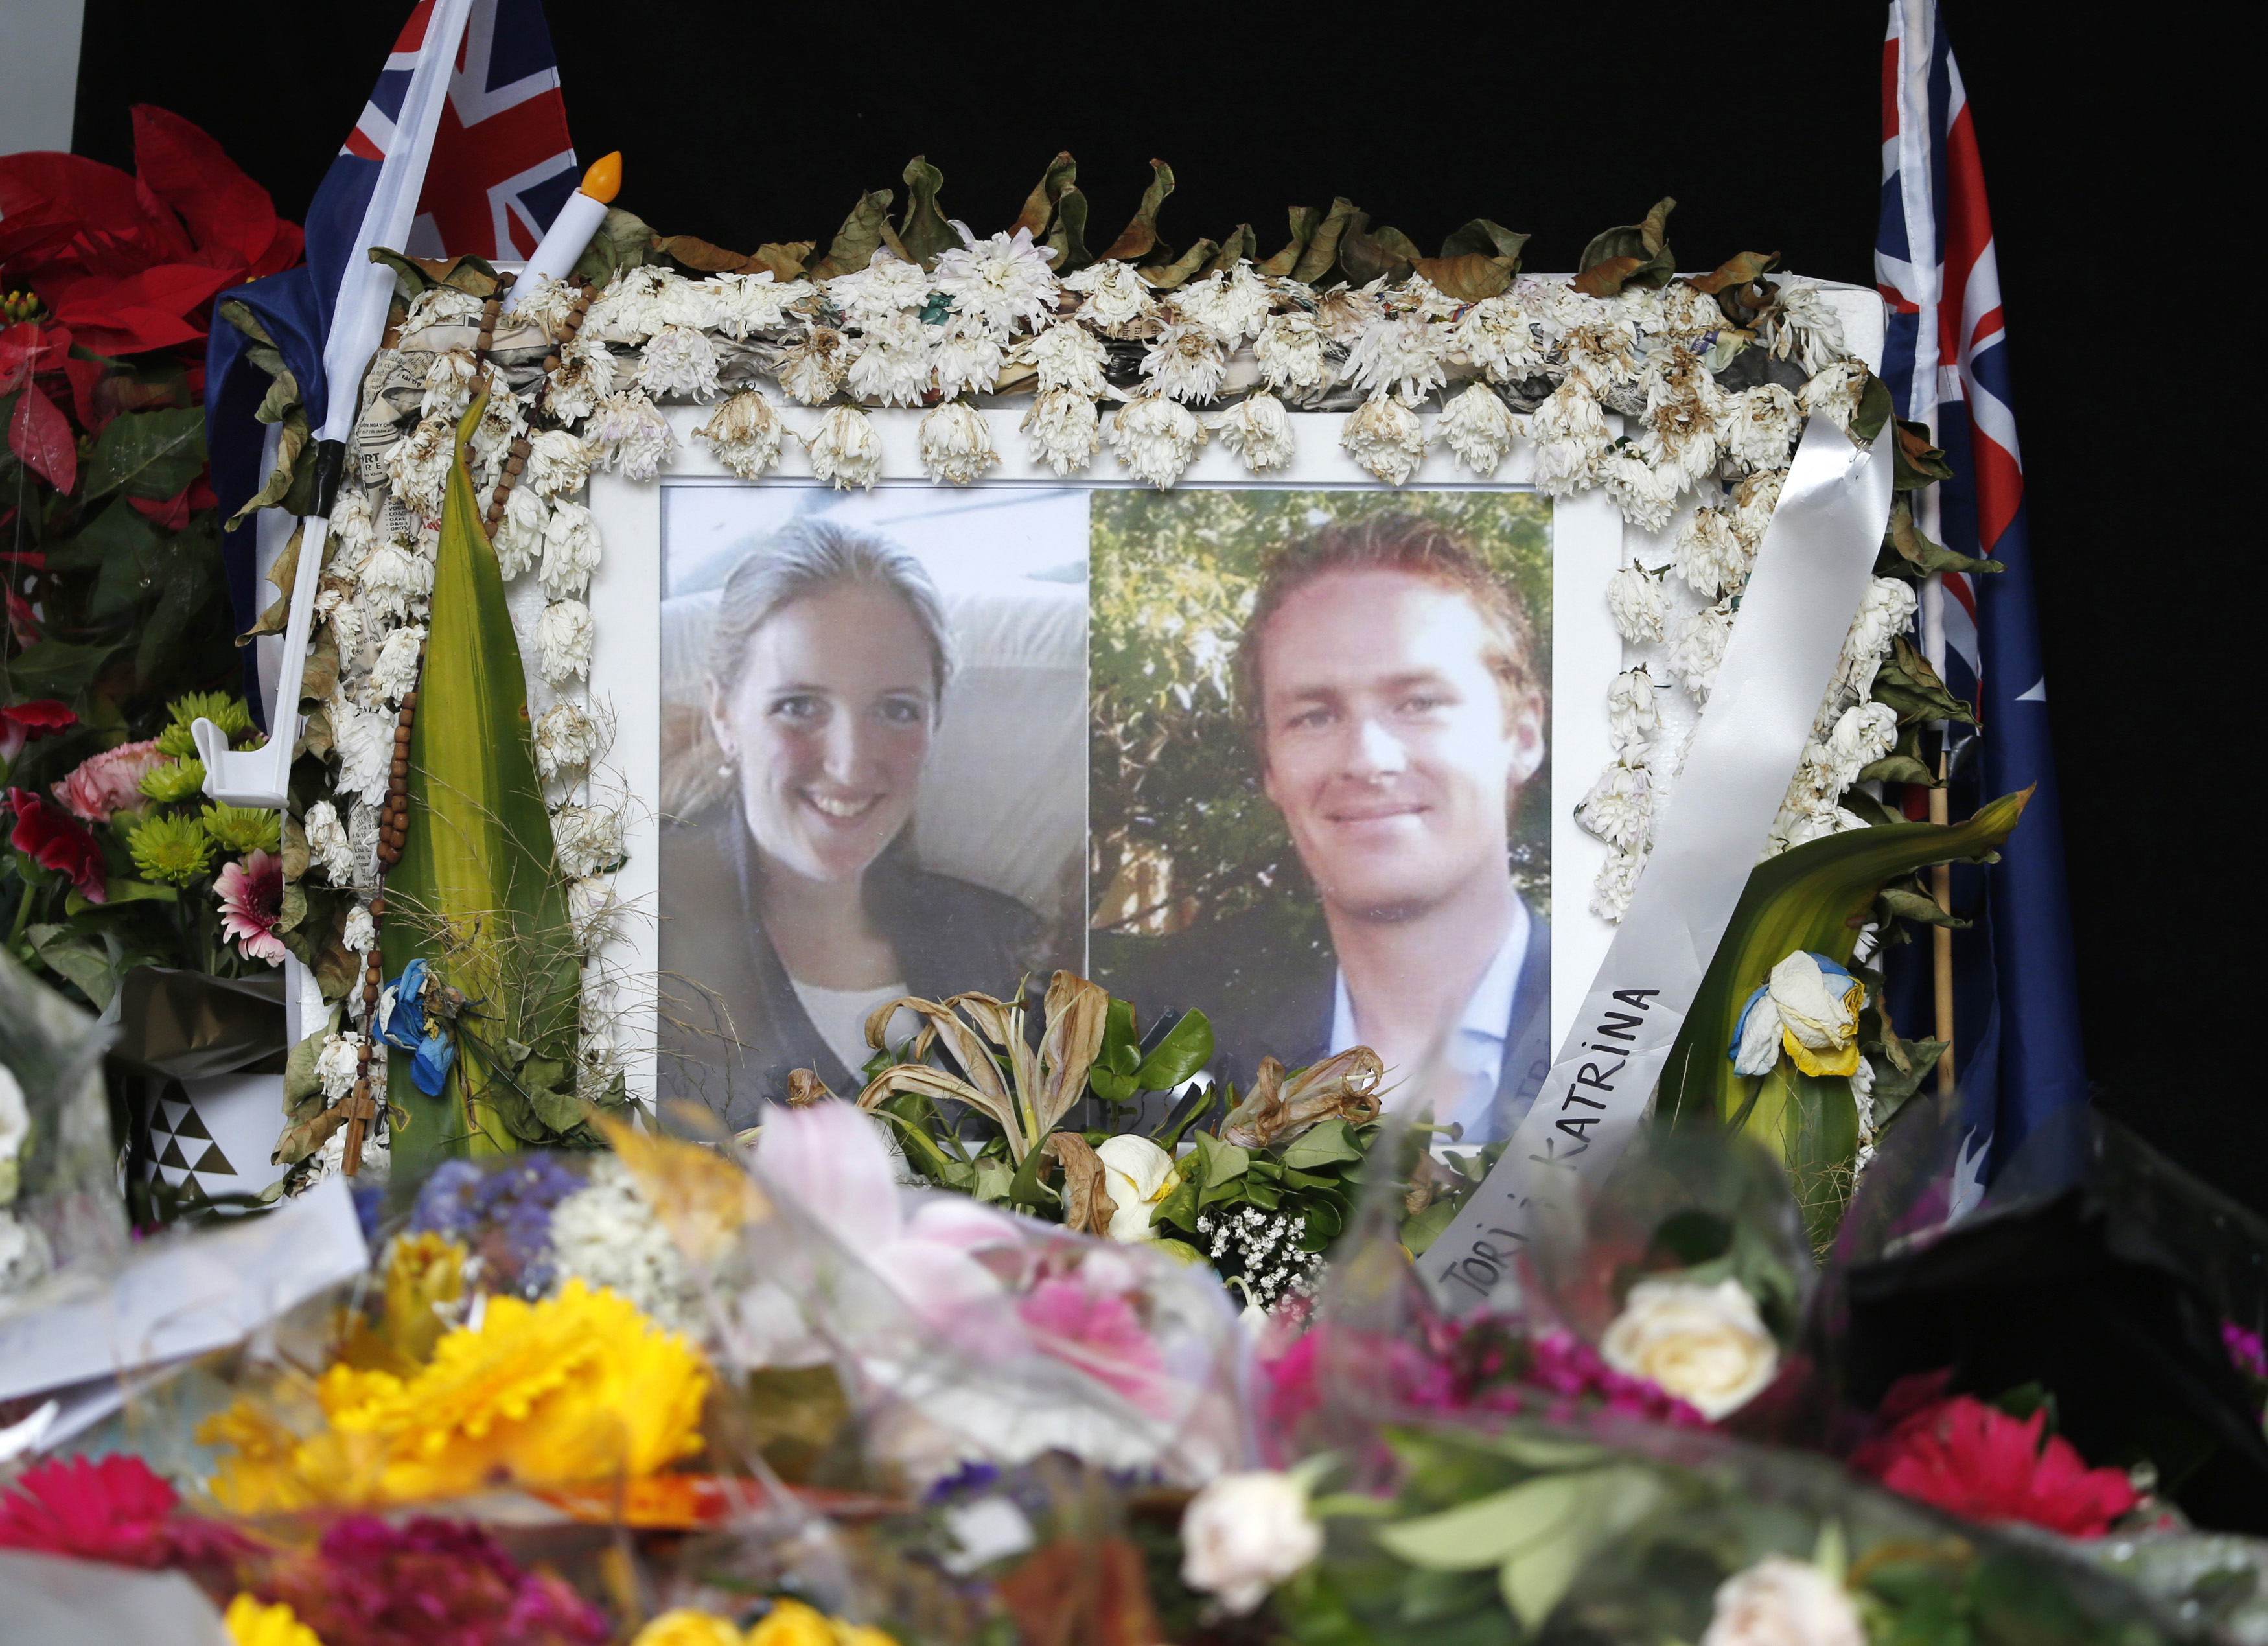 Photographs of the Sydney siege victims, lawyer Katrina Dawson, left, and café manager Tori Johnson, are displayed near the site of the siege in Sidney's Martin Place on Dec. 23, 2014